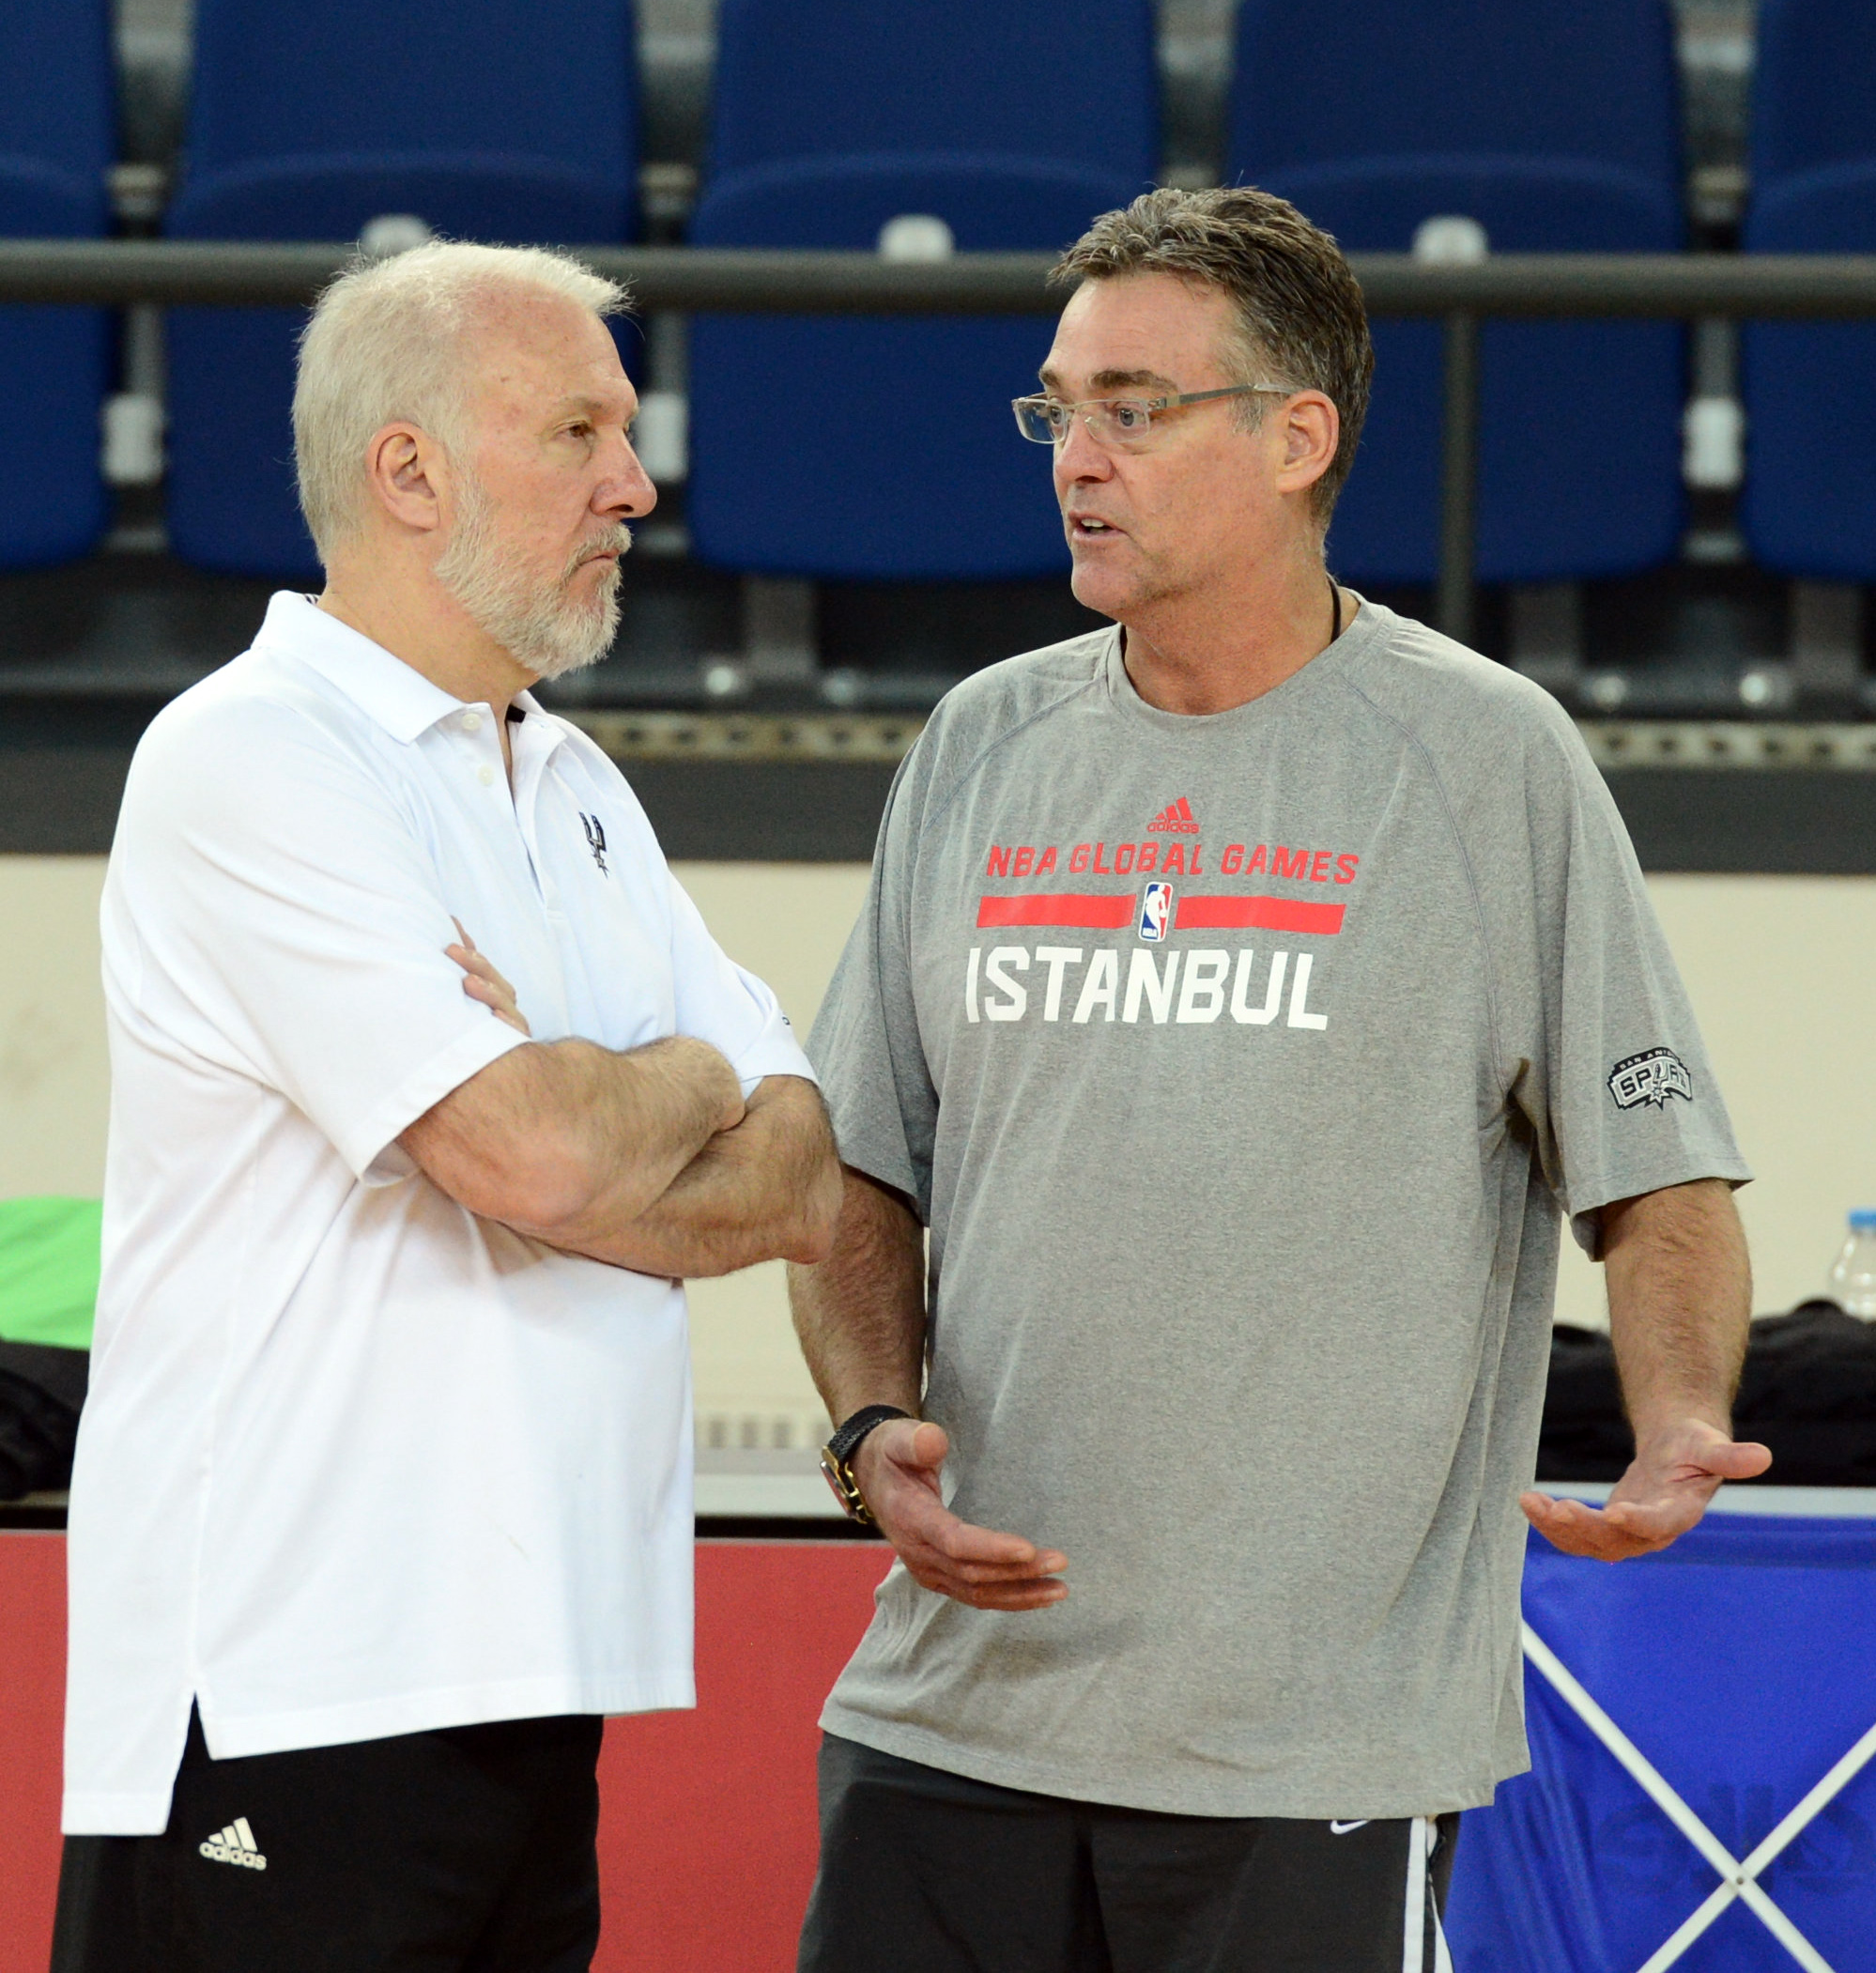 ISTANBUL, TURKEY - OCTOBER 10:  Head Coach Gregg Popovich and General Manager R.C. Buford of the San Antonio Spurs talk during practice as part of the NBA Global Games on October 10, 2014 at the Darussafaka Practice Facility in Istanbul, Turkey. (Photo by